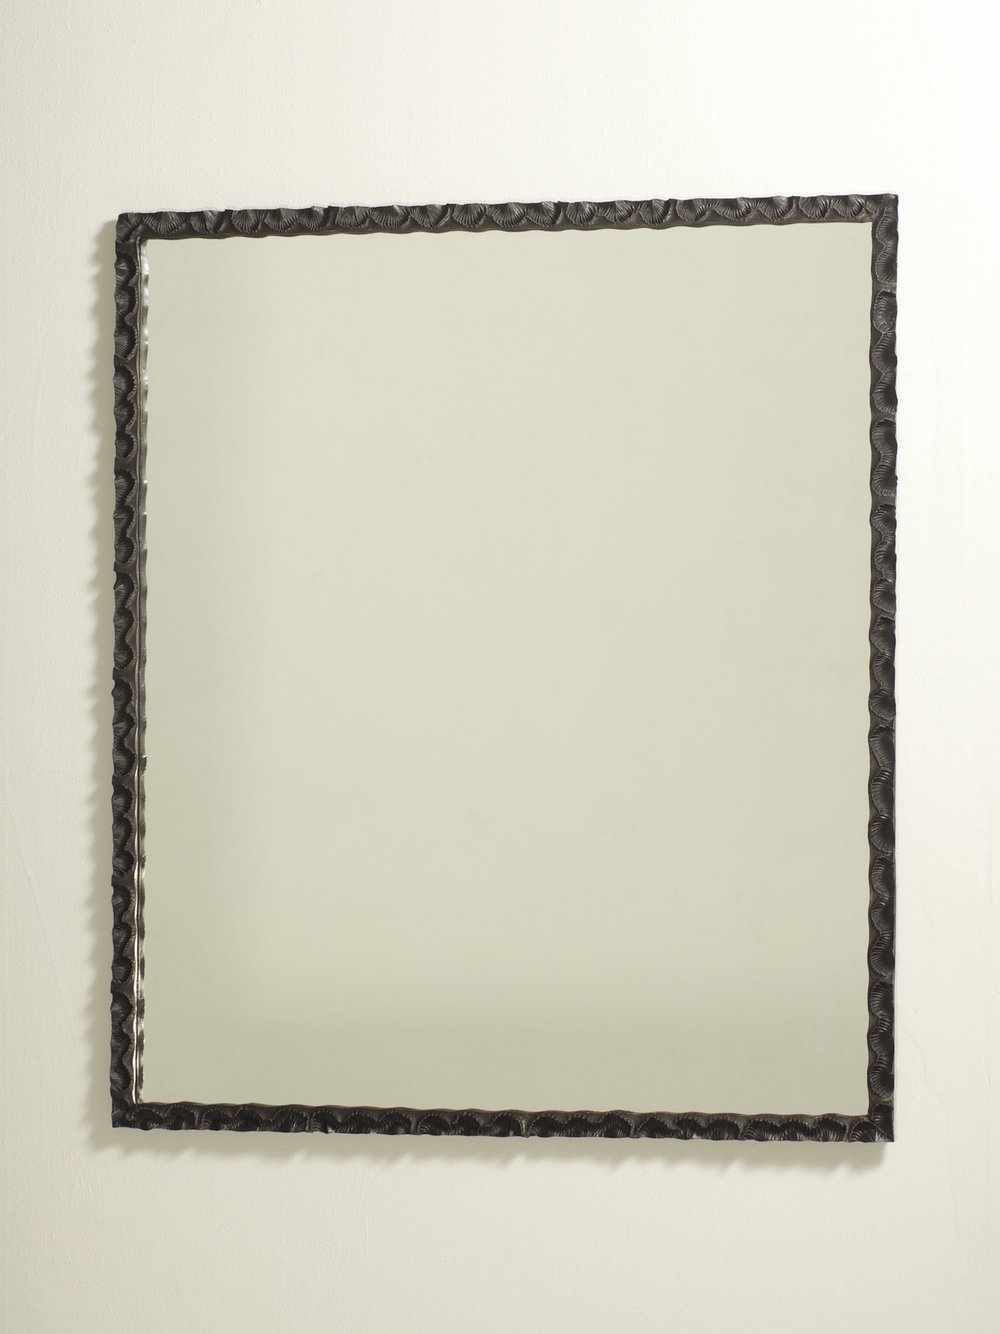 'Spirifer' - rectangular 2010 (black)    Bronze float glass    850w X 990h X 30 mm deep    Ed of 5 - 3 AP